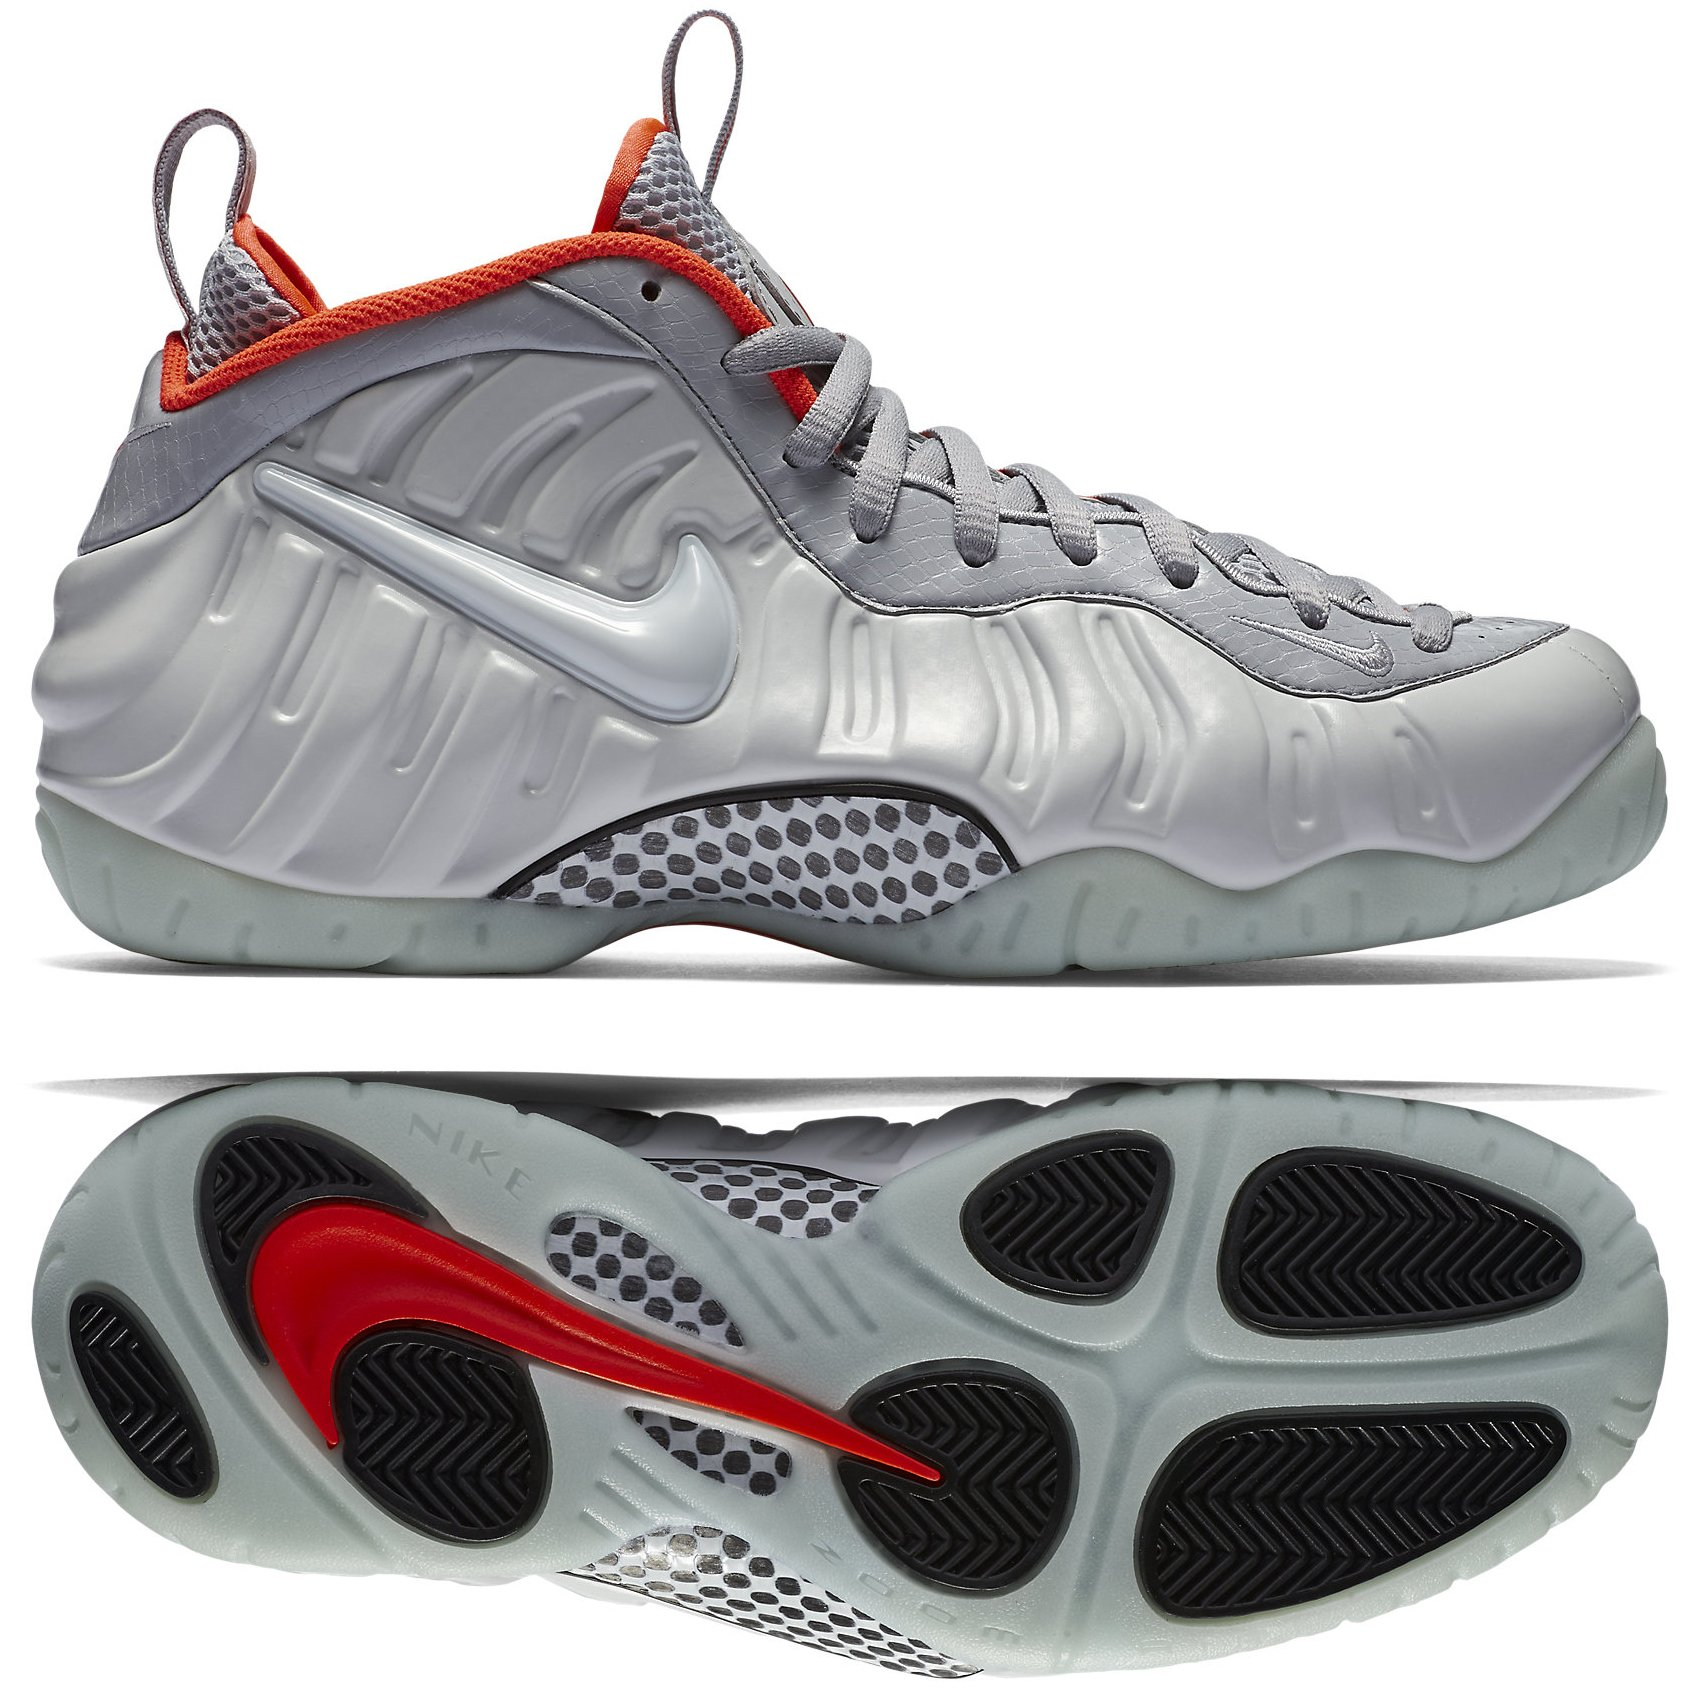 lowest price a8ace 914b9 Nike air Foamposite pro PRM Mens hi top Basketball Trainers 616750 Sneakers  Shoes (US 8, Pure Platinum Wolf Grey 003)